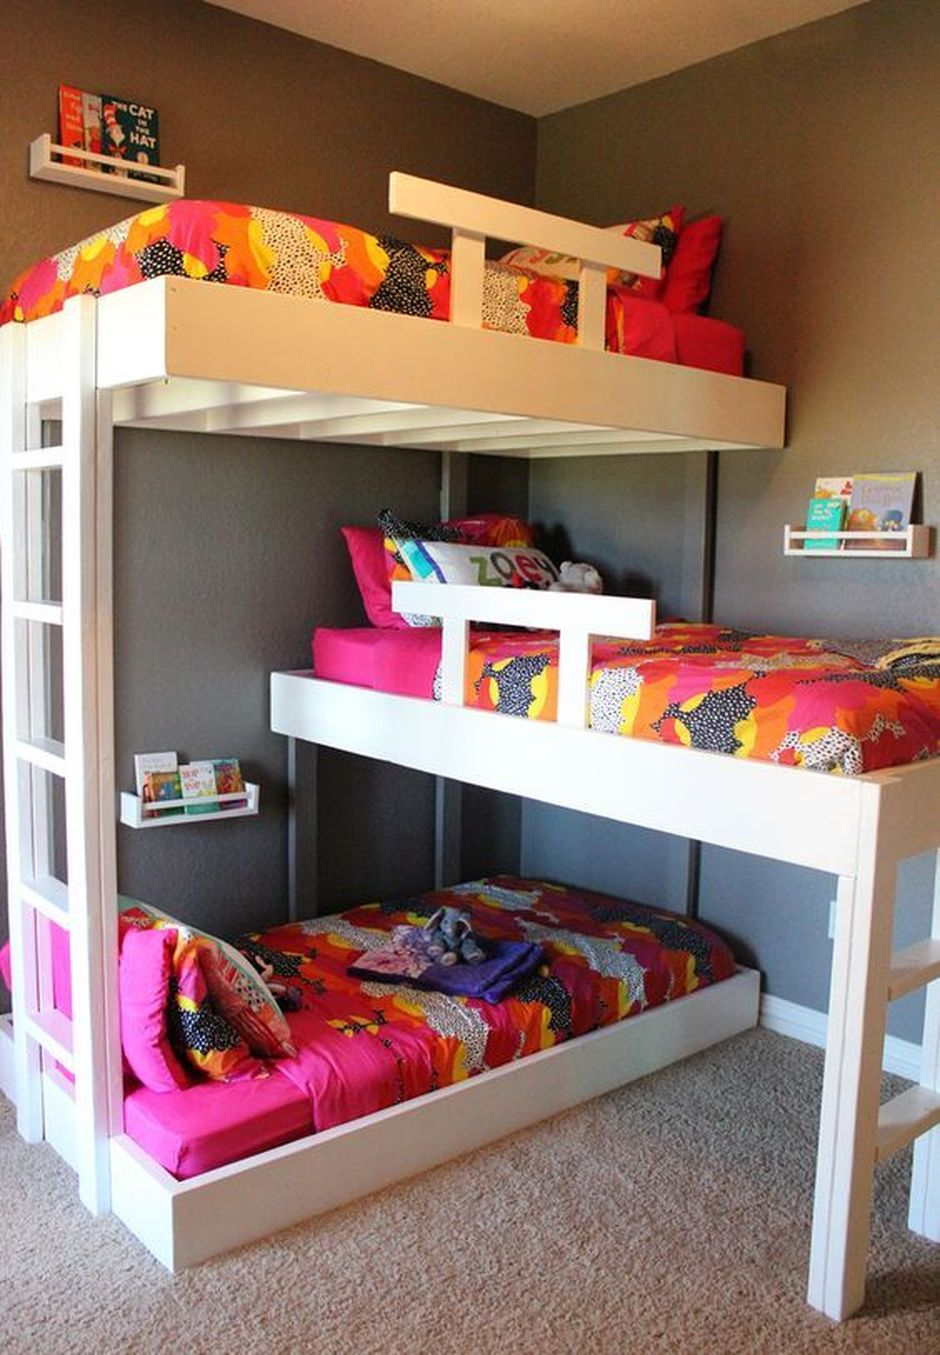 Cool Loft Bed Design Ideas for Small Room 2